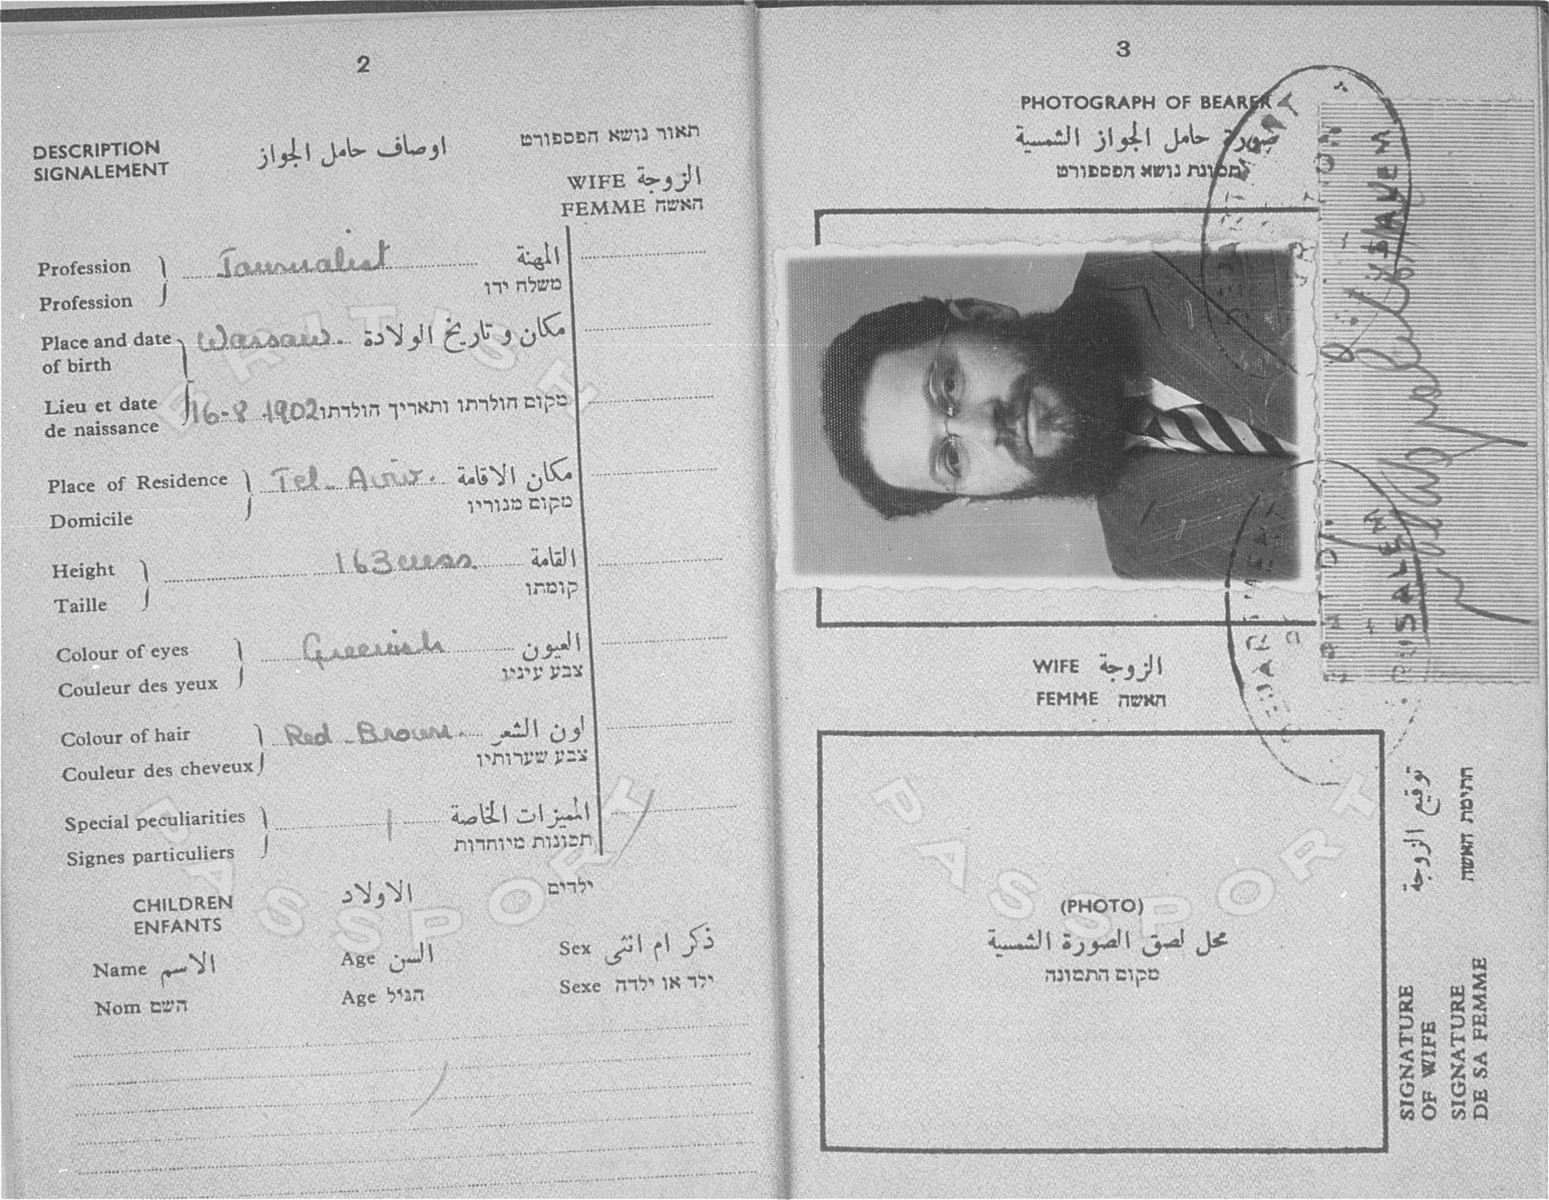 A British-Palestinian passport issued to Szmuel Icek Rotsztajn.